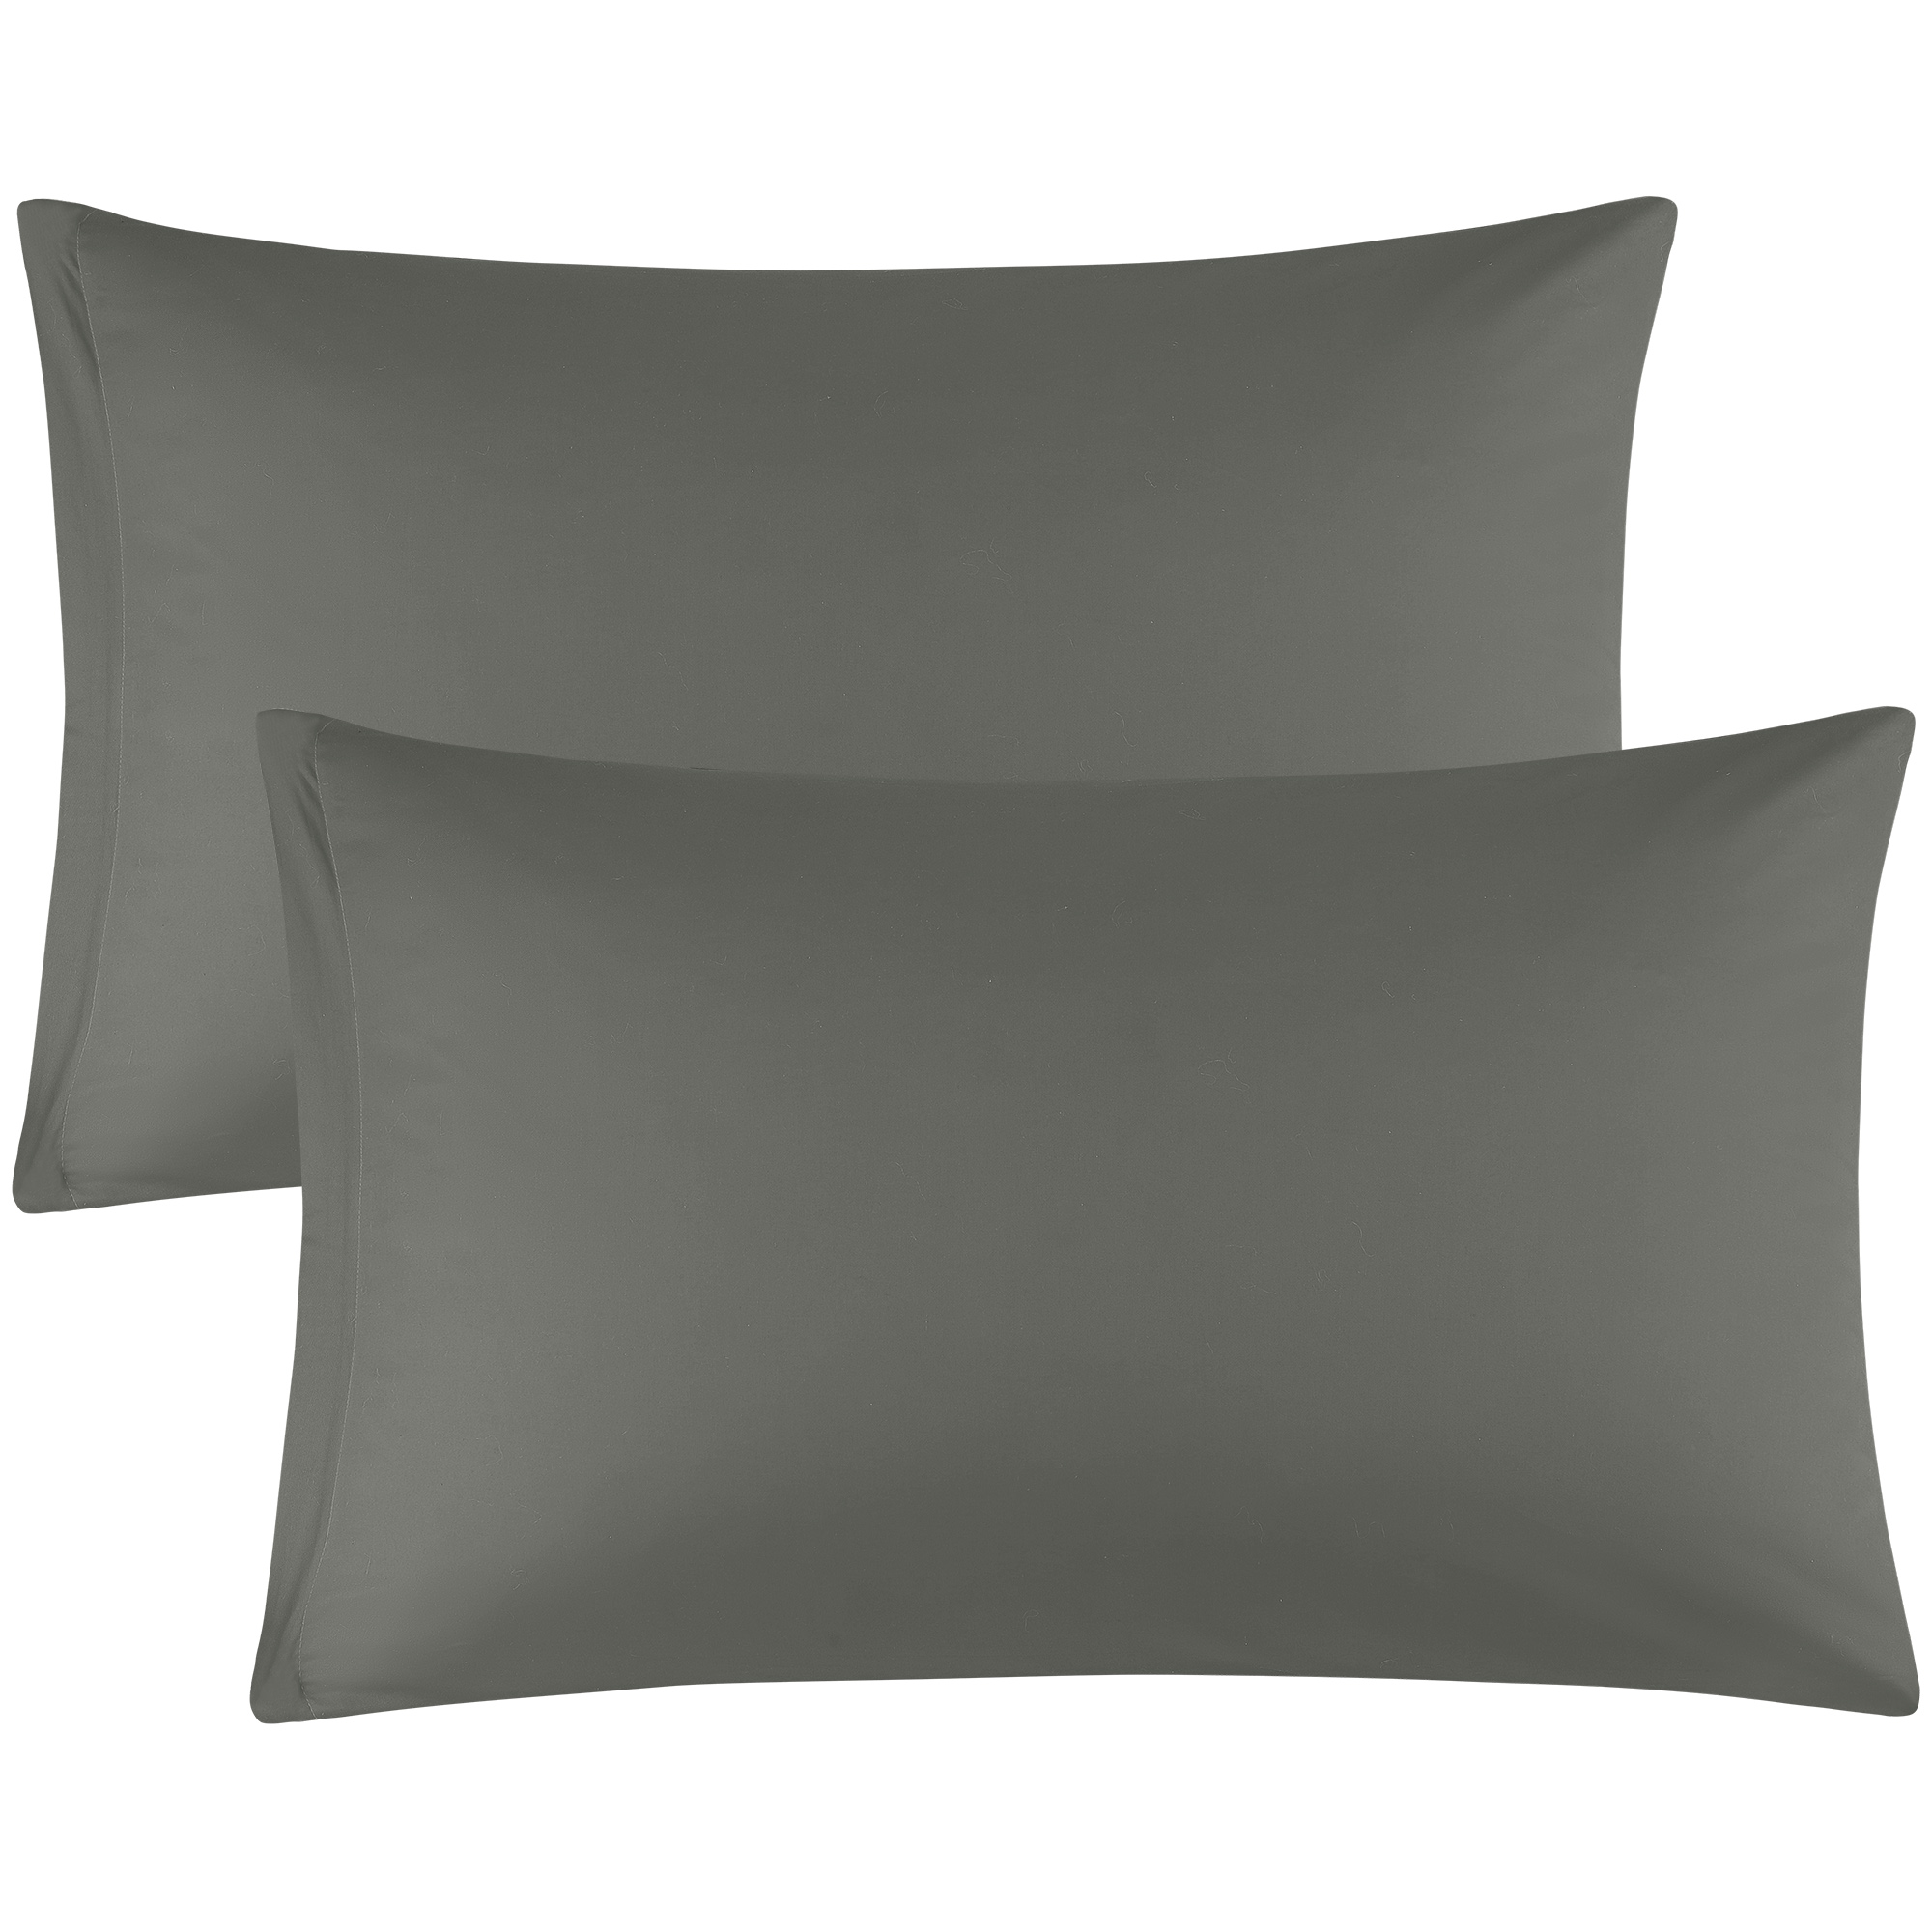 Zippered Pillowcases Covers Egyptian Cotton 2-Pack (20 x 30 Inch, Dark Gray)